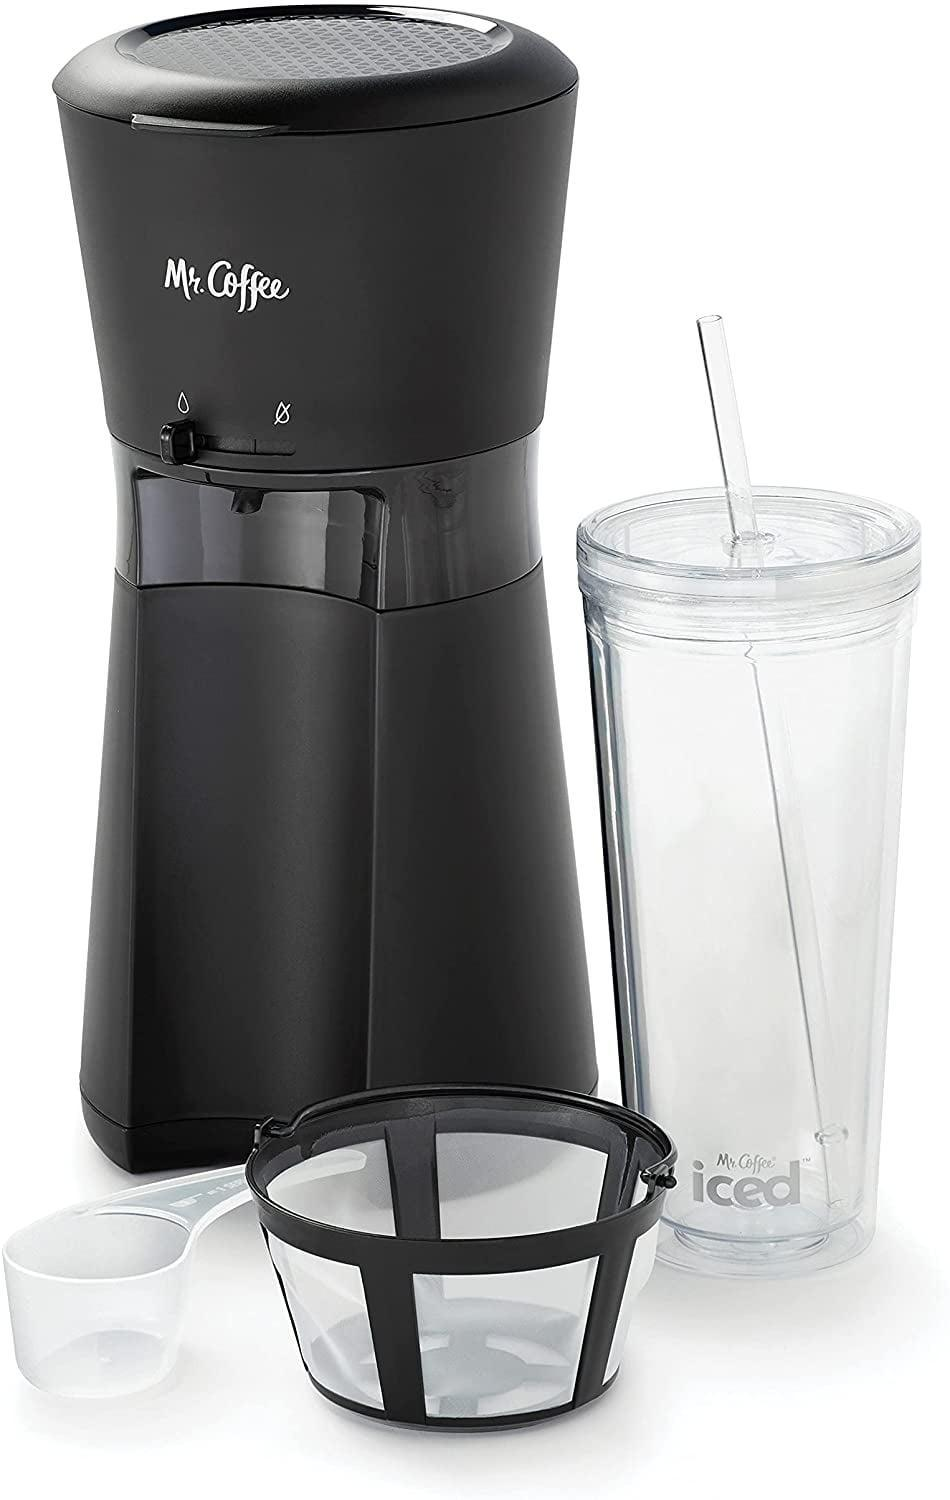 """<p>If you love iced coffee, you need to try out the <span>Mr. Coffee Iced Coffee Maker</span> ($23-$25). It brews a cool, refreshing cup in just under four minutes. Now, you'll never have to deal with watered-down iced coffee! It comes in """"like new,"""" """"very good,"""" and """"good"""" conditions. </p>"""